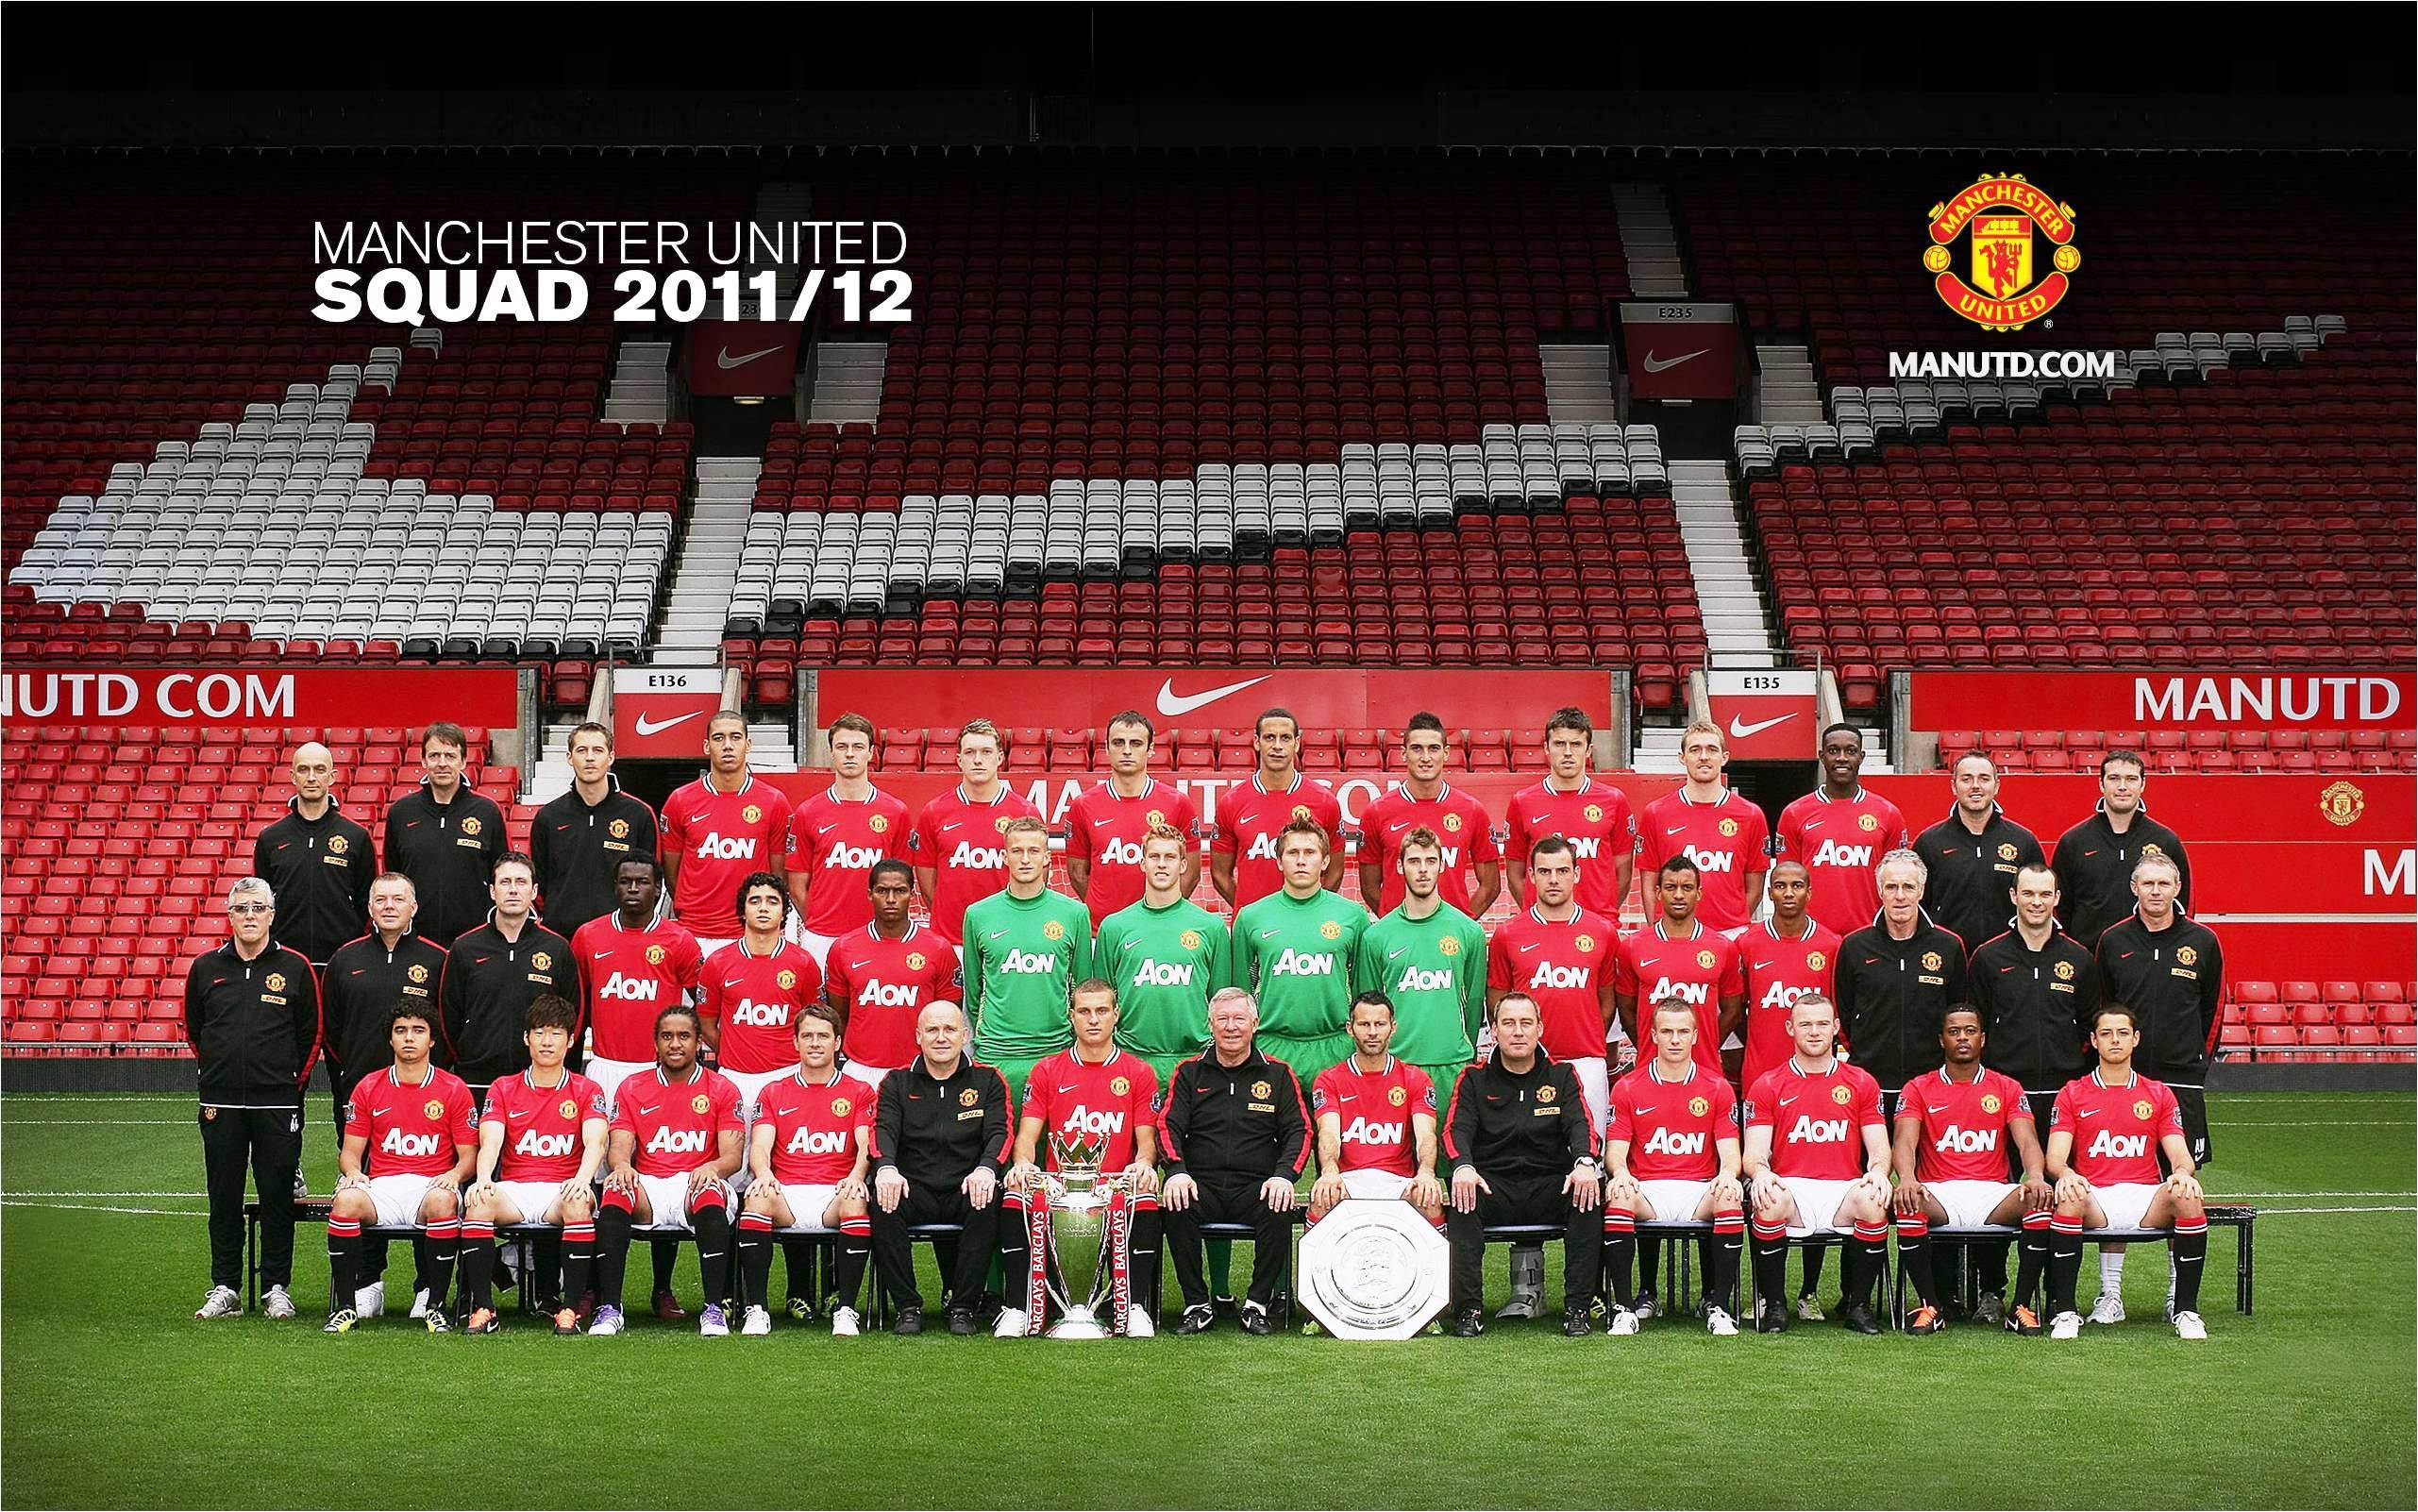 Manchester United 2011 2012 player football image wallpapers PC